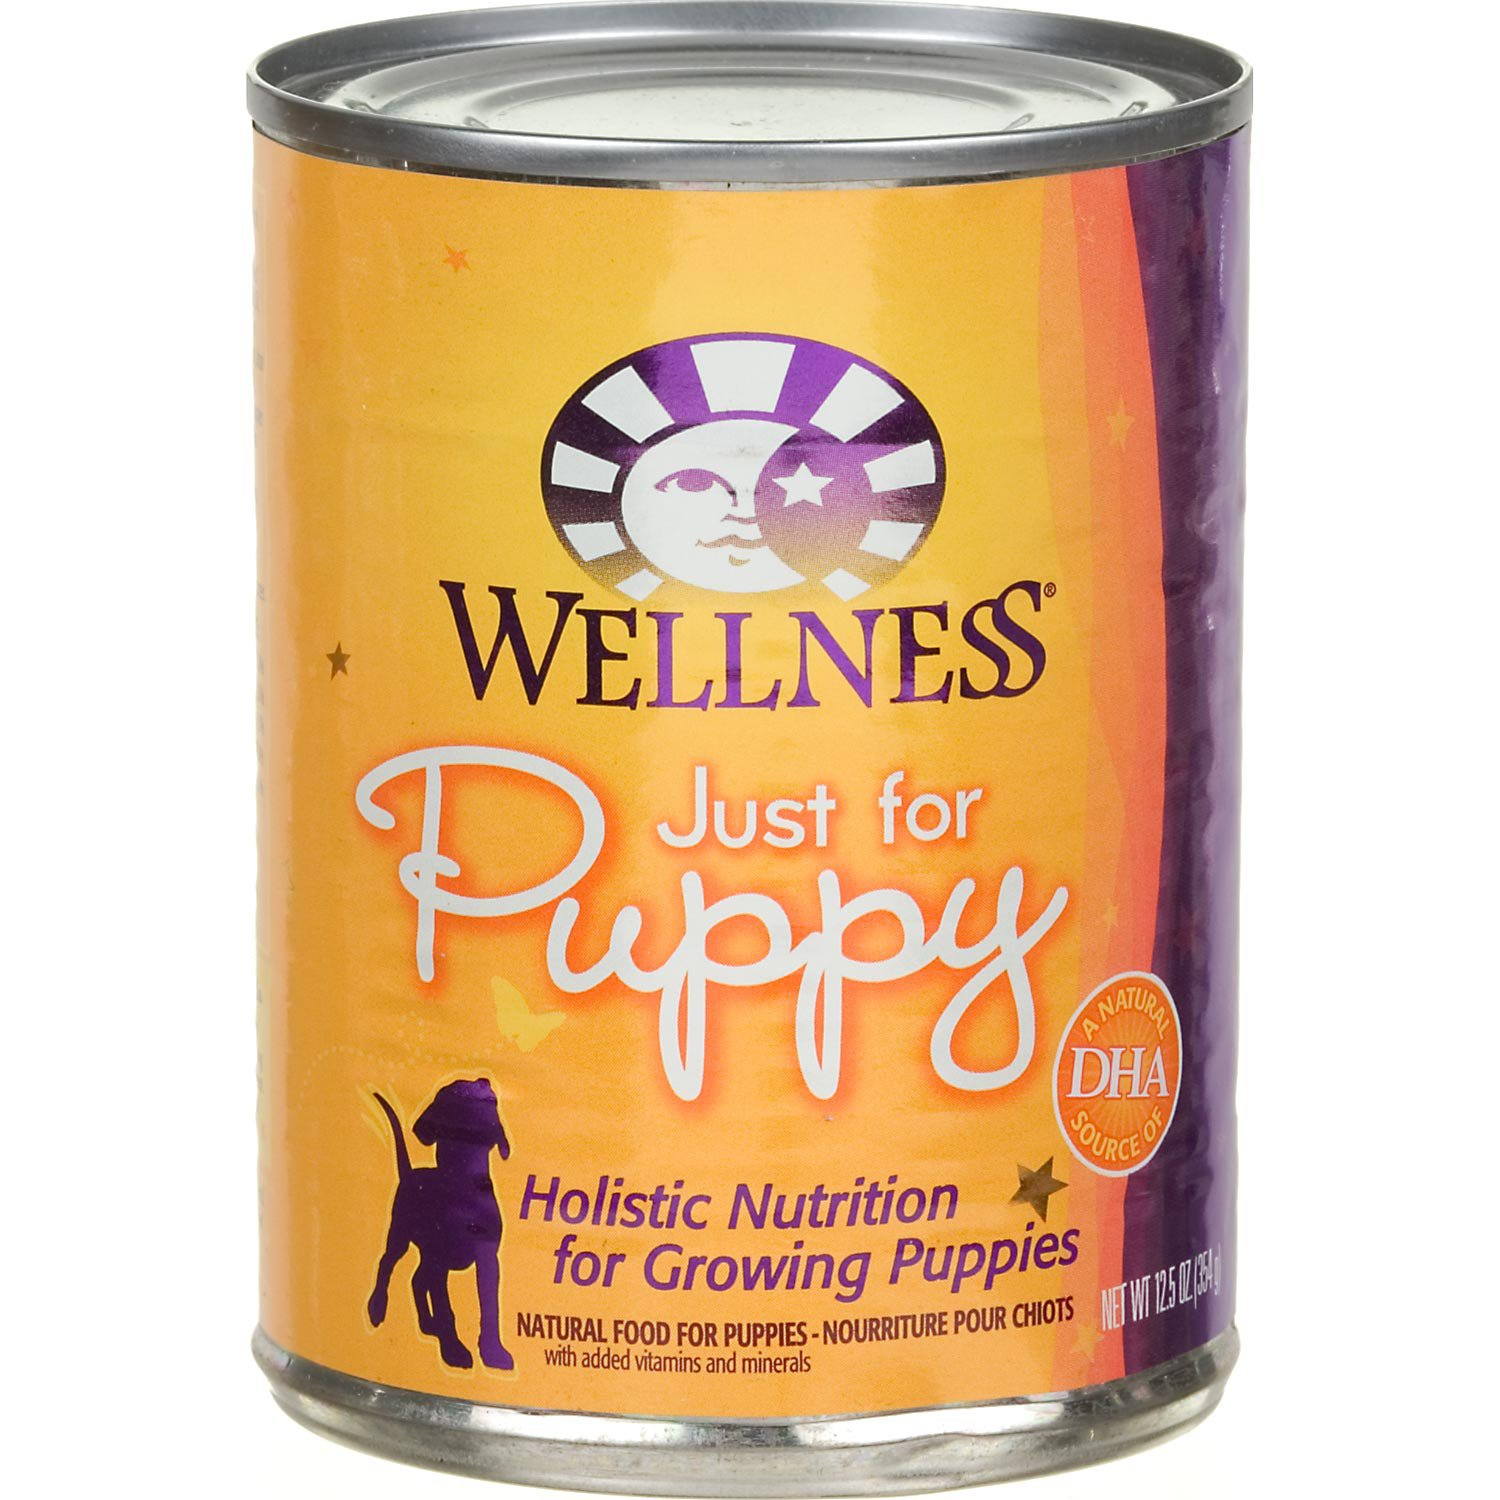 Wellness Just for Puppy Canned Food